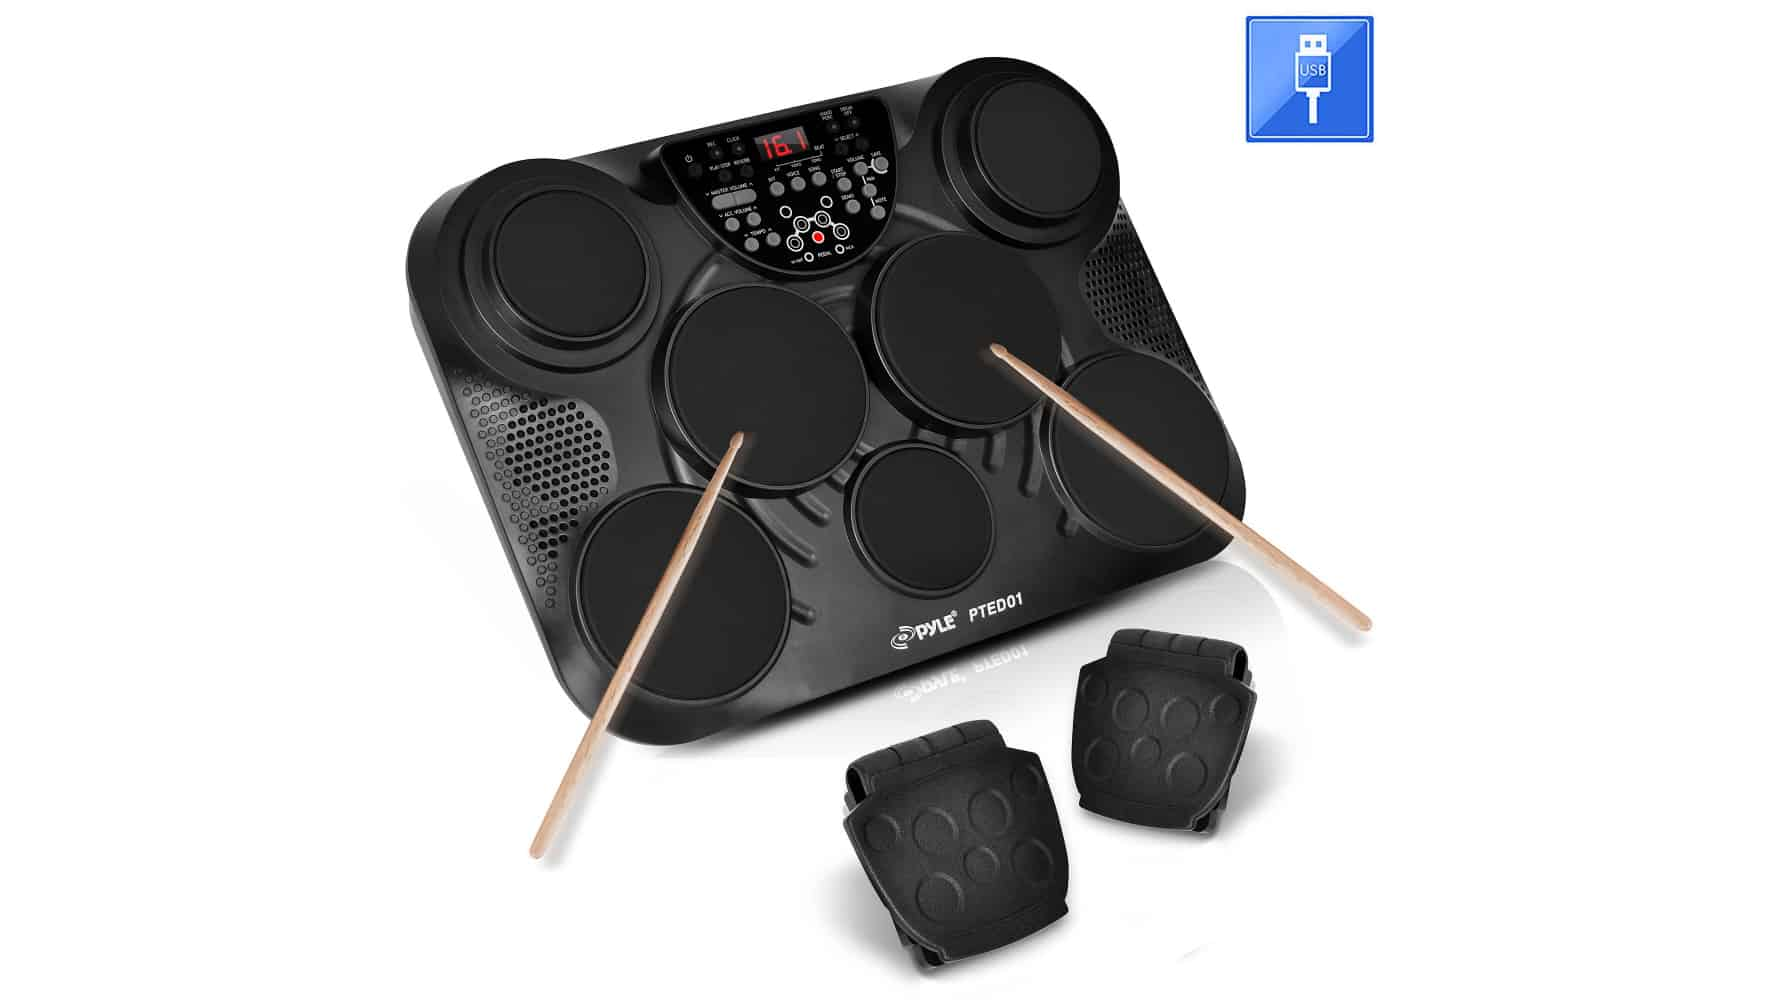 PylePro PTED01 Portable Drums, Tabletop Drum Set